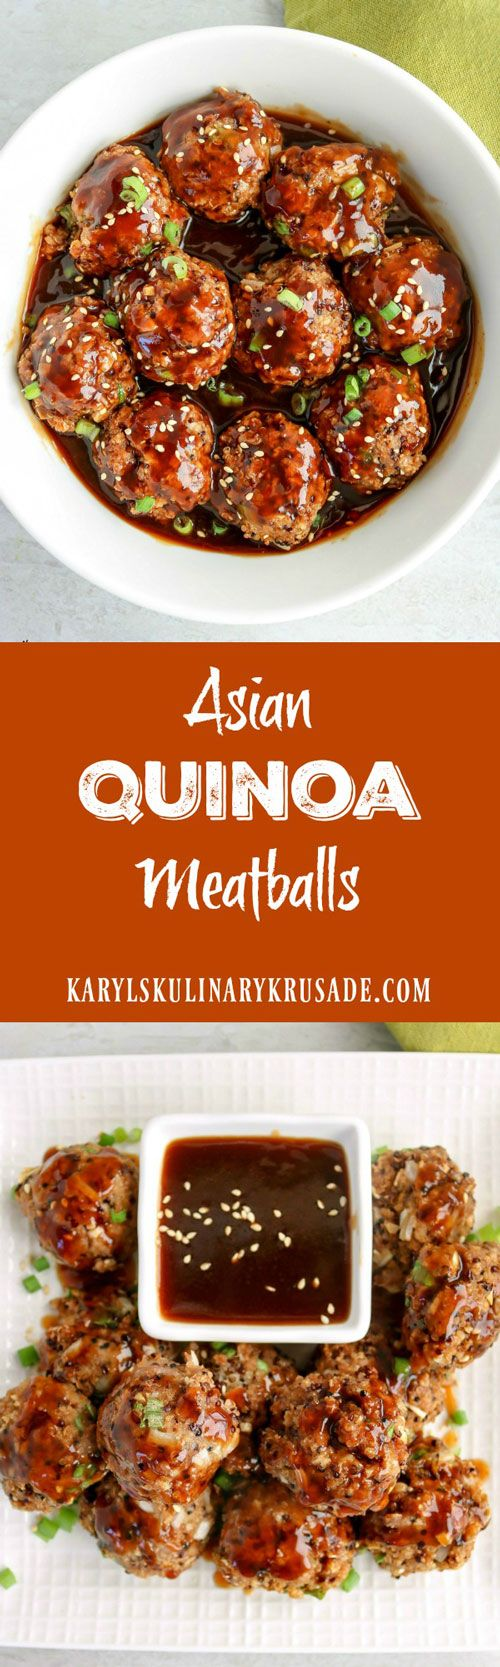 Asian Quinoa Meatballs is the perfect appetizer or lunch. Quinoa and ground turkey form a delicious and healthy meatball that you will love. Top or dip with an Asian-style sauce for a wonderful, silky finish